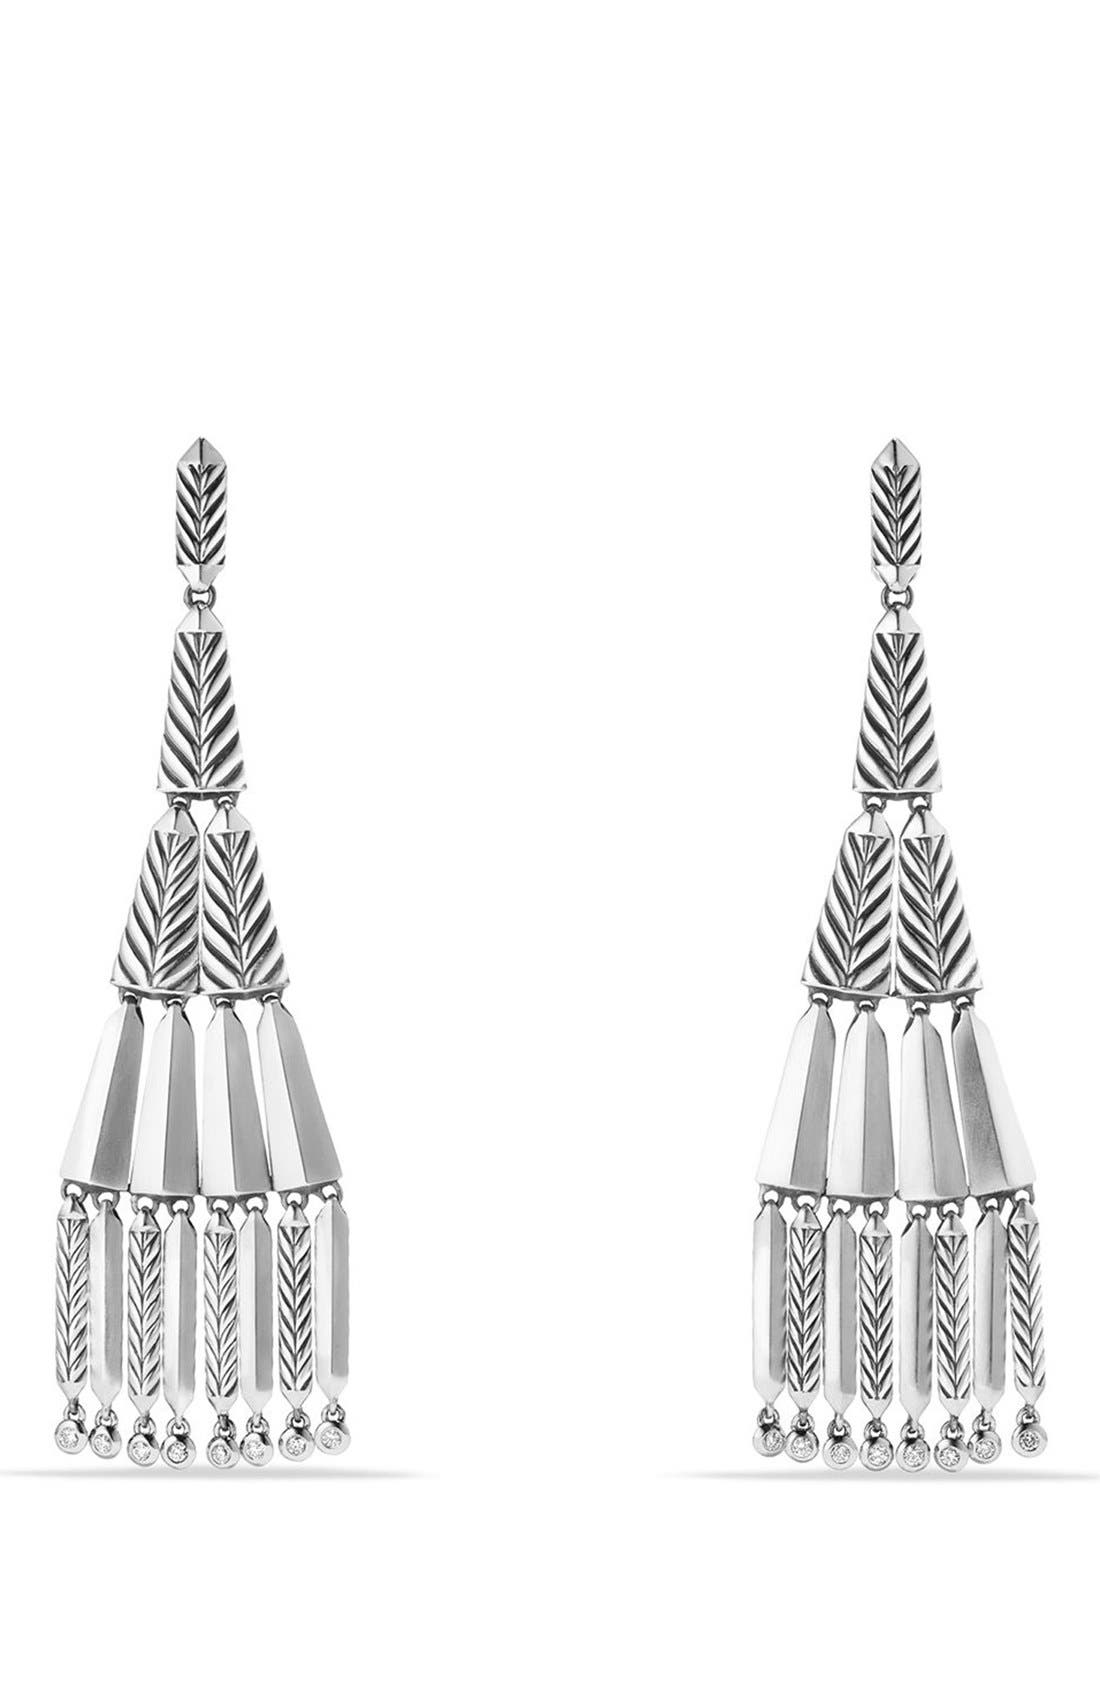 Stax Fringe Earrings with Diamonds,                             Main thumbnail 1, color,                             SILVER